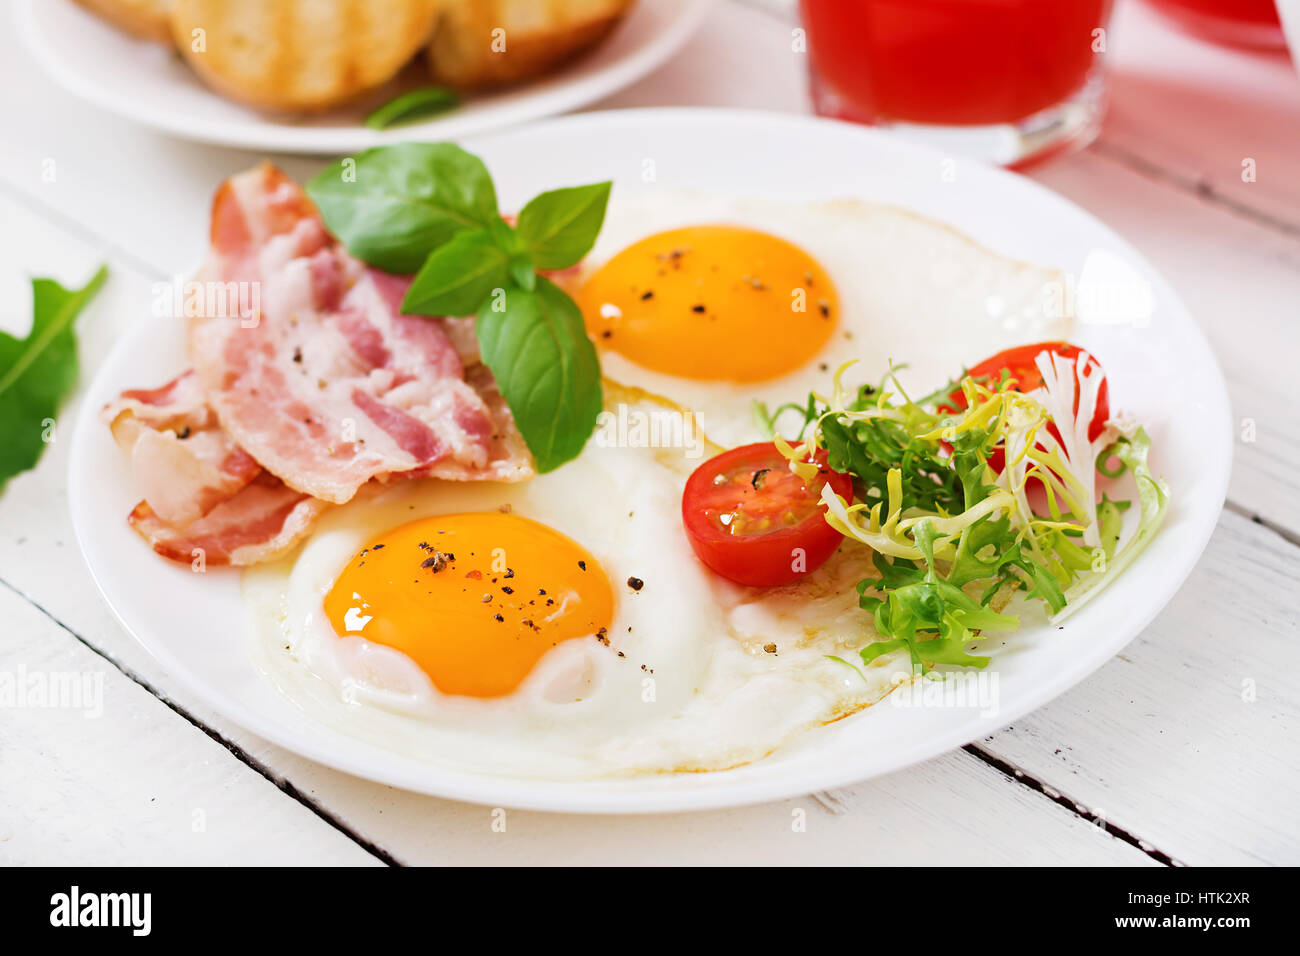 English breakfast - fried egg, tomatoes and bacon. - Stock Image